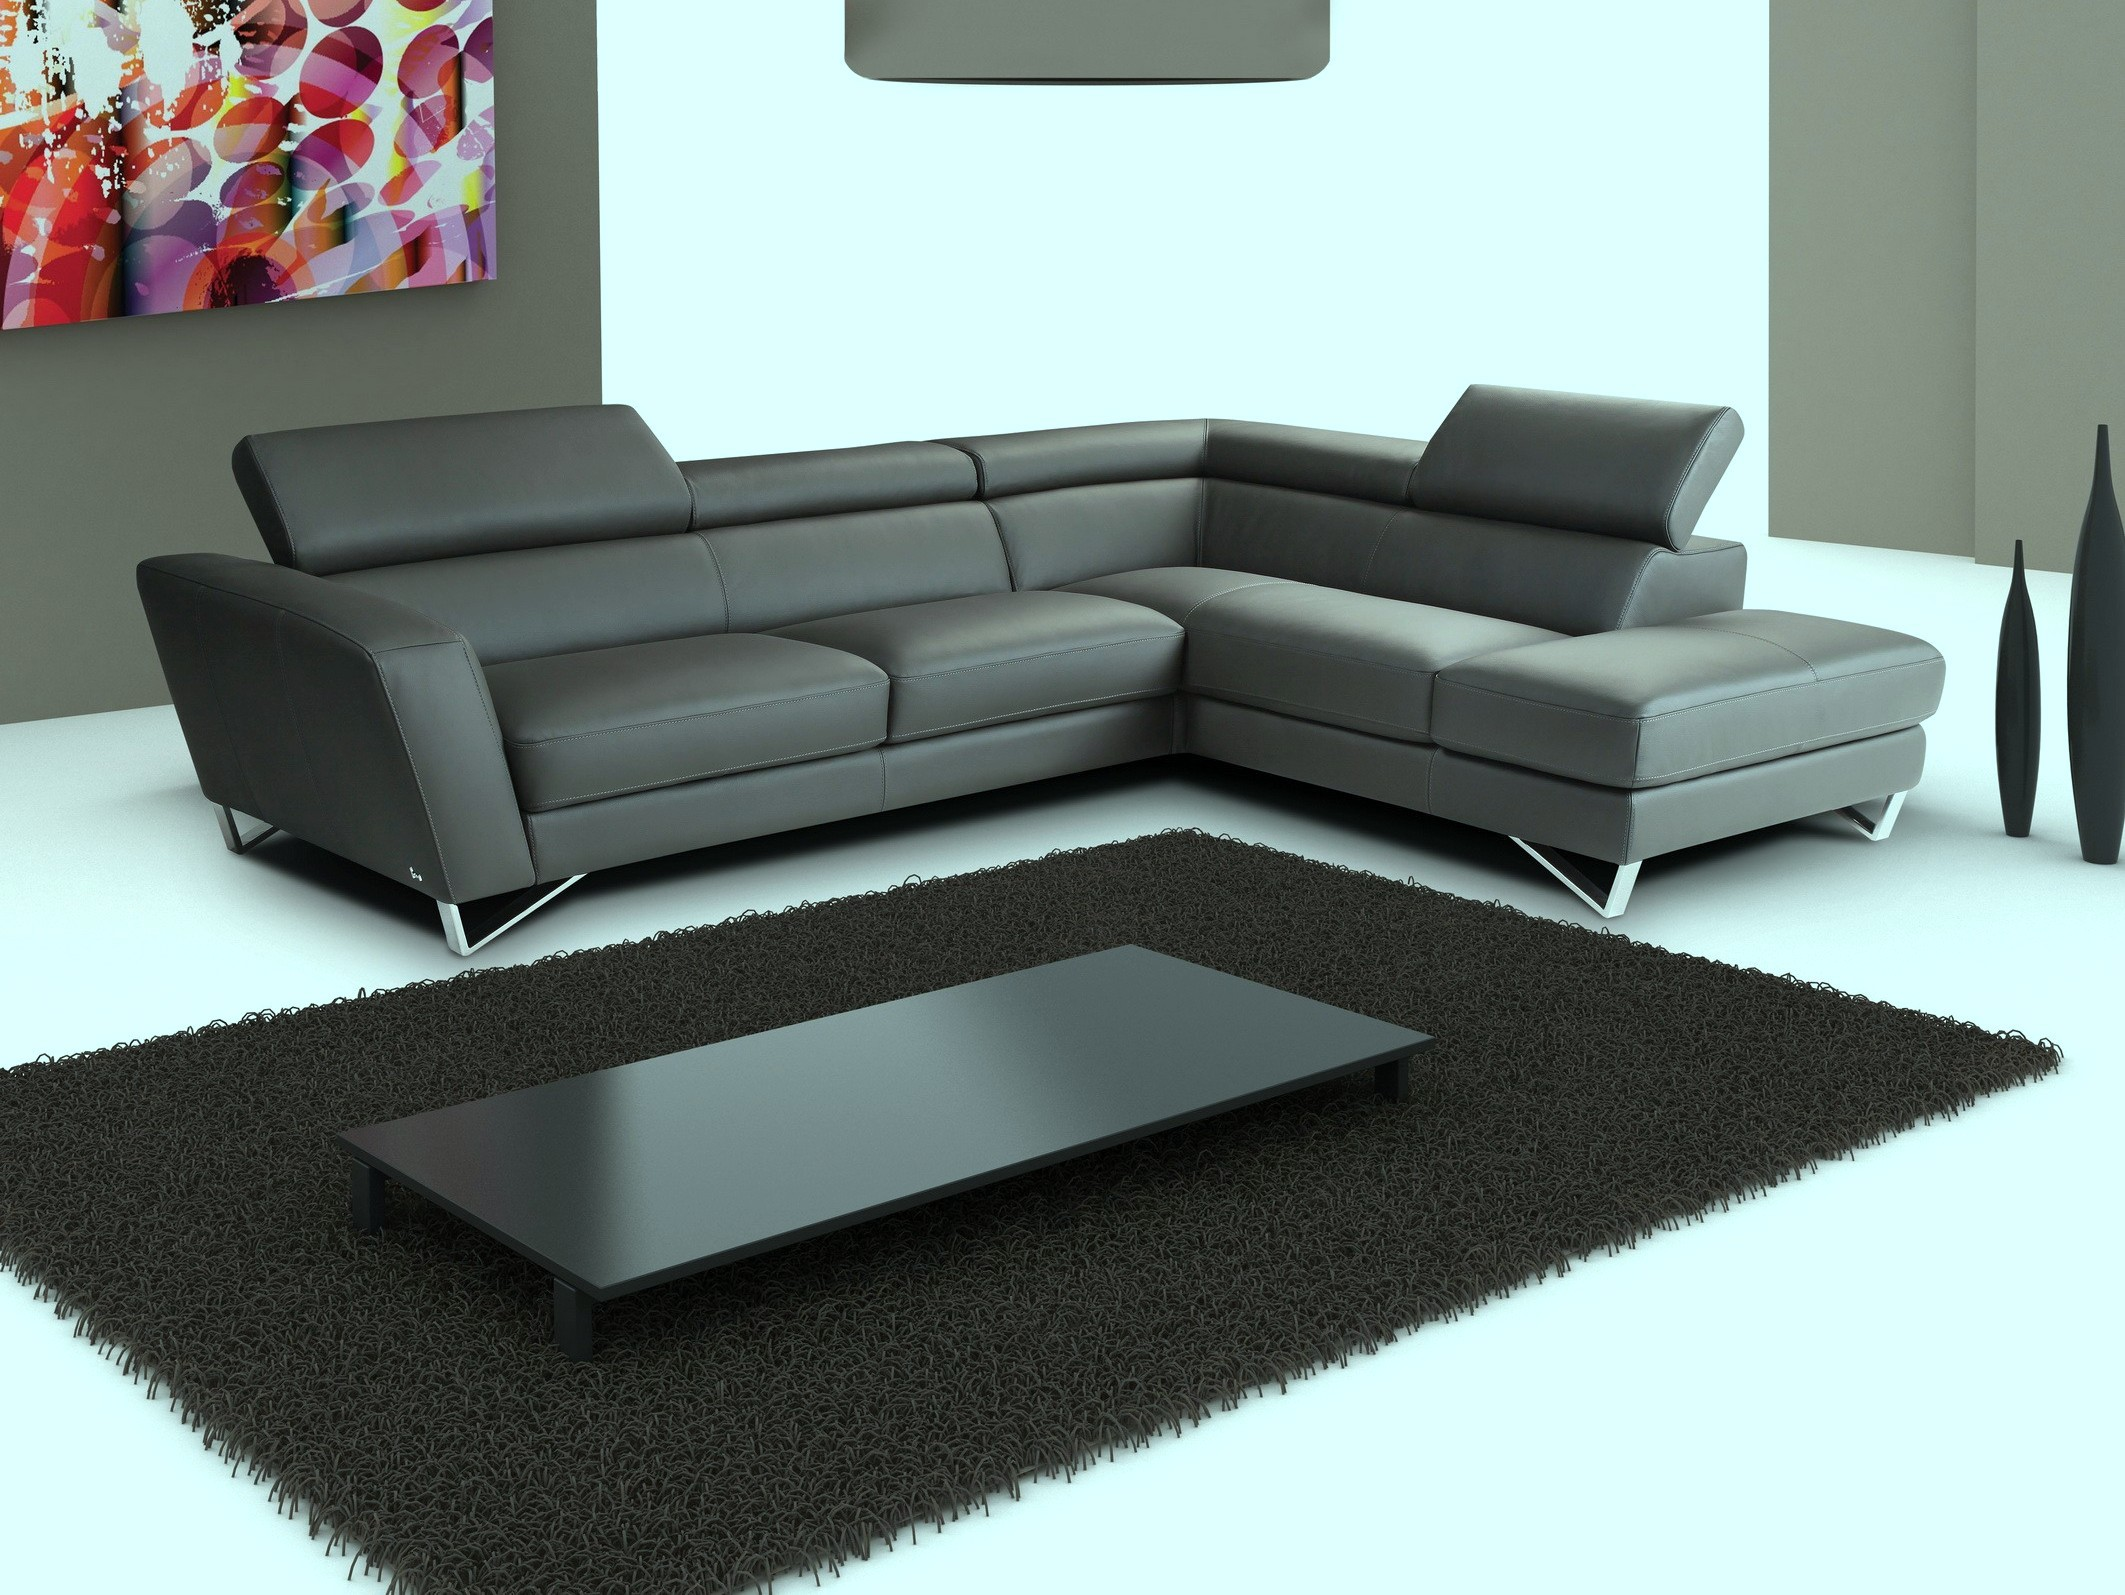 Super Low Black Coffee Table